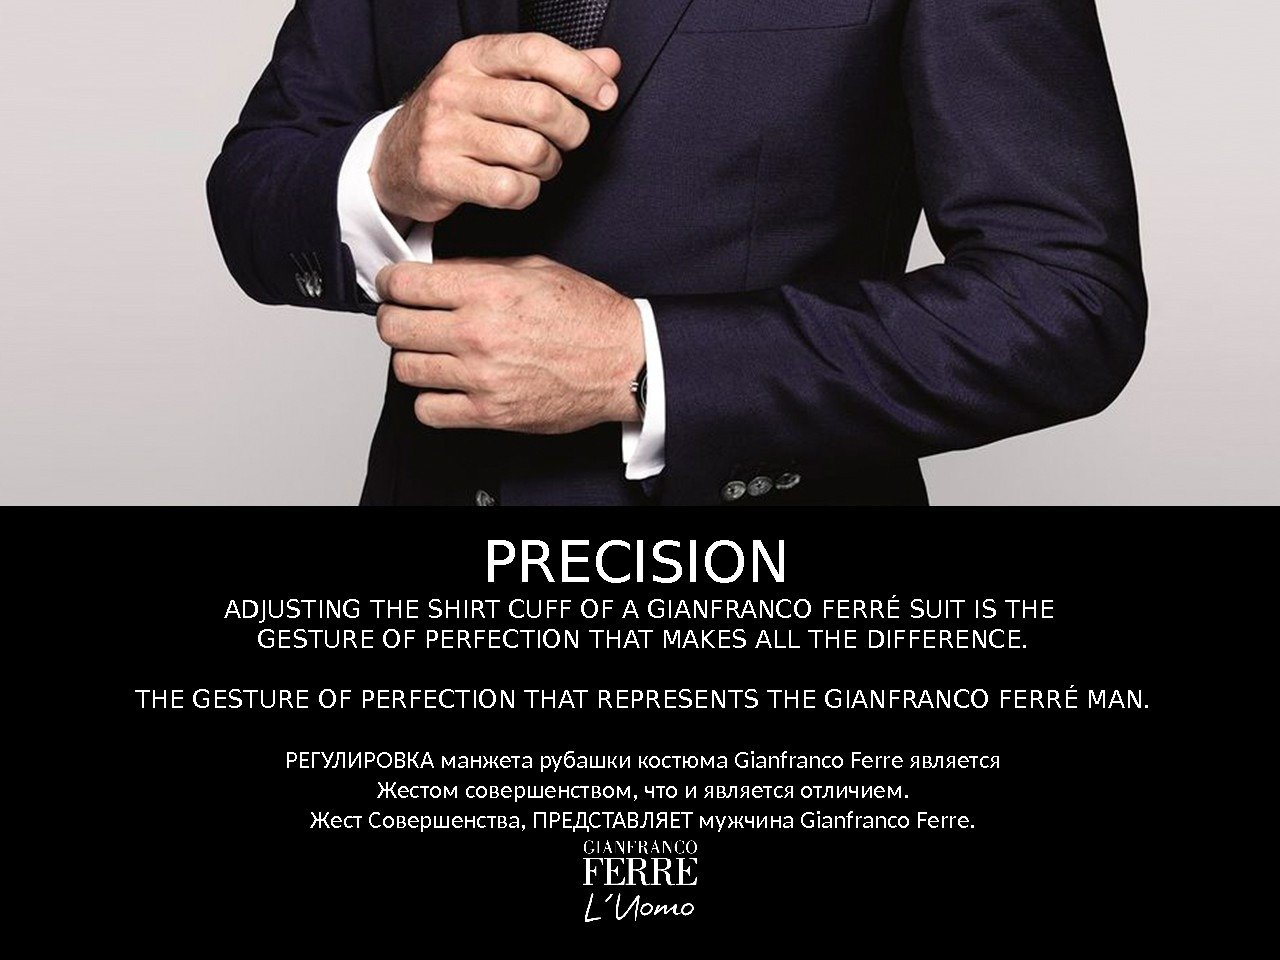 ADJUSTING THE SHIRT CUFF OF A GIANFRANCO FERRÉ SUIT IS THE GESTURE OF PERFECTION